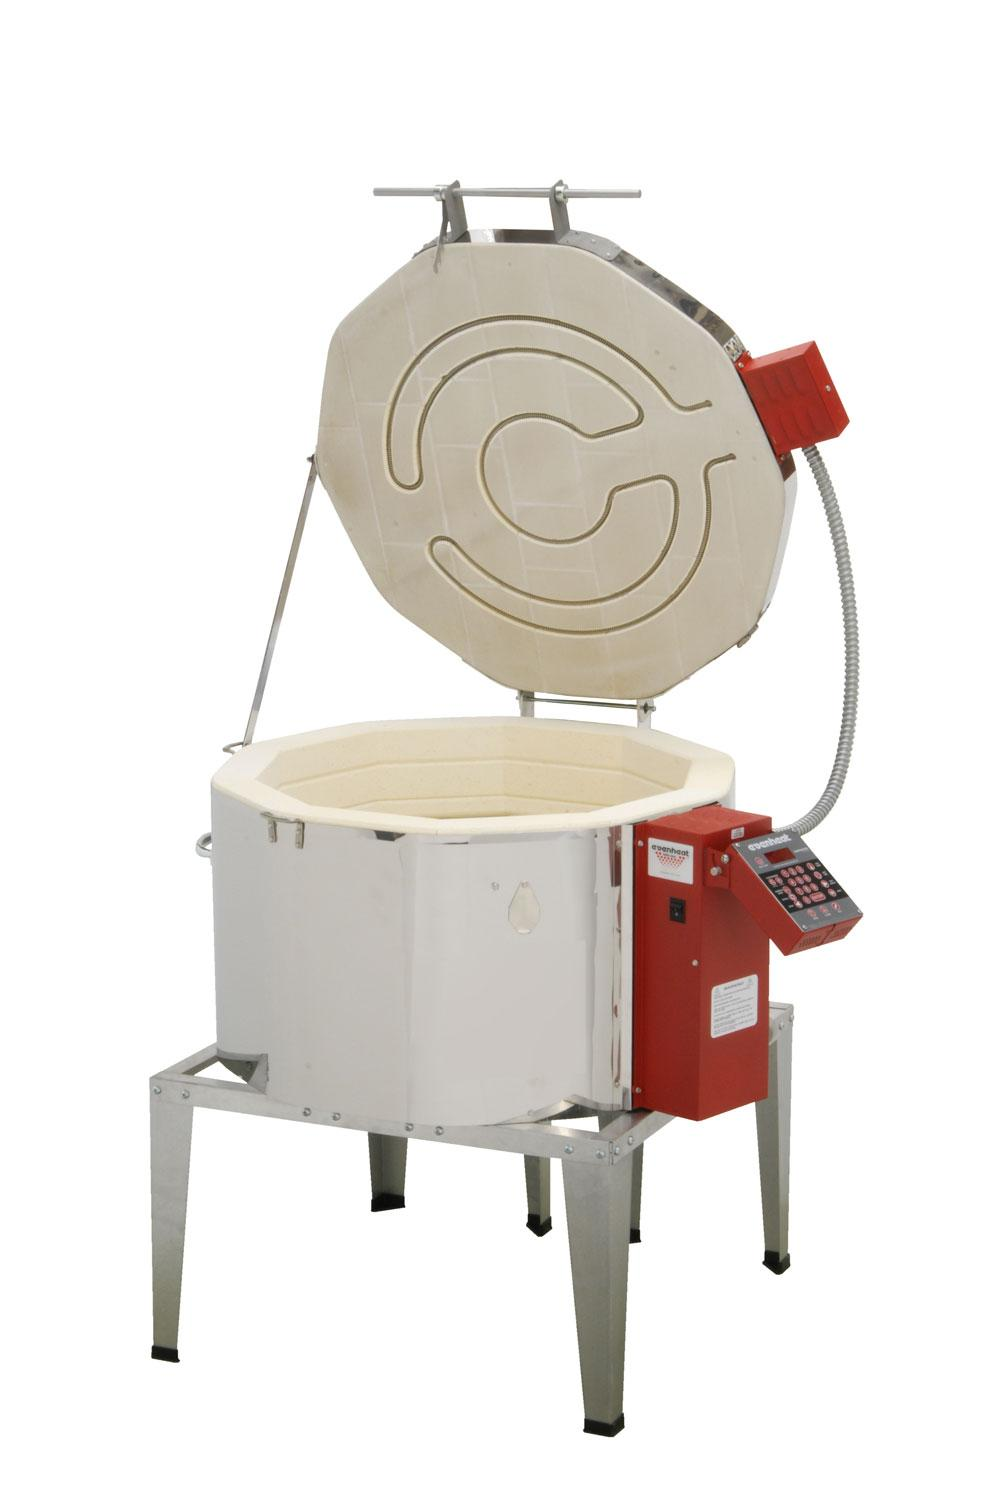 GTS 23-9 23 Floor Kiln with RampMaster with Express Mode